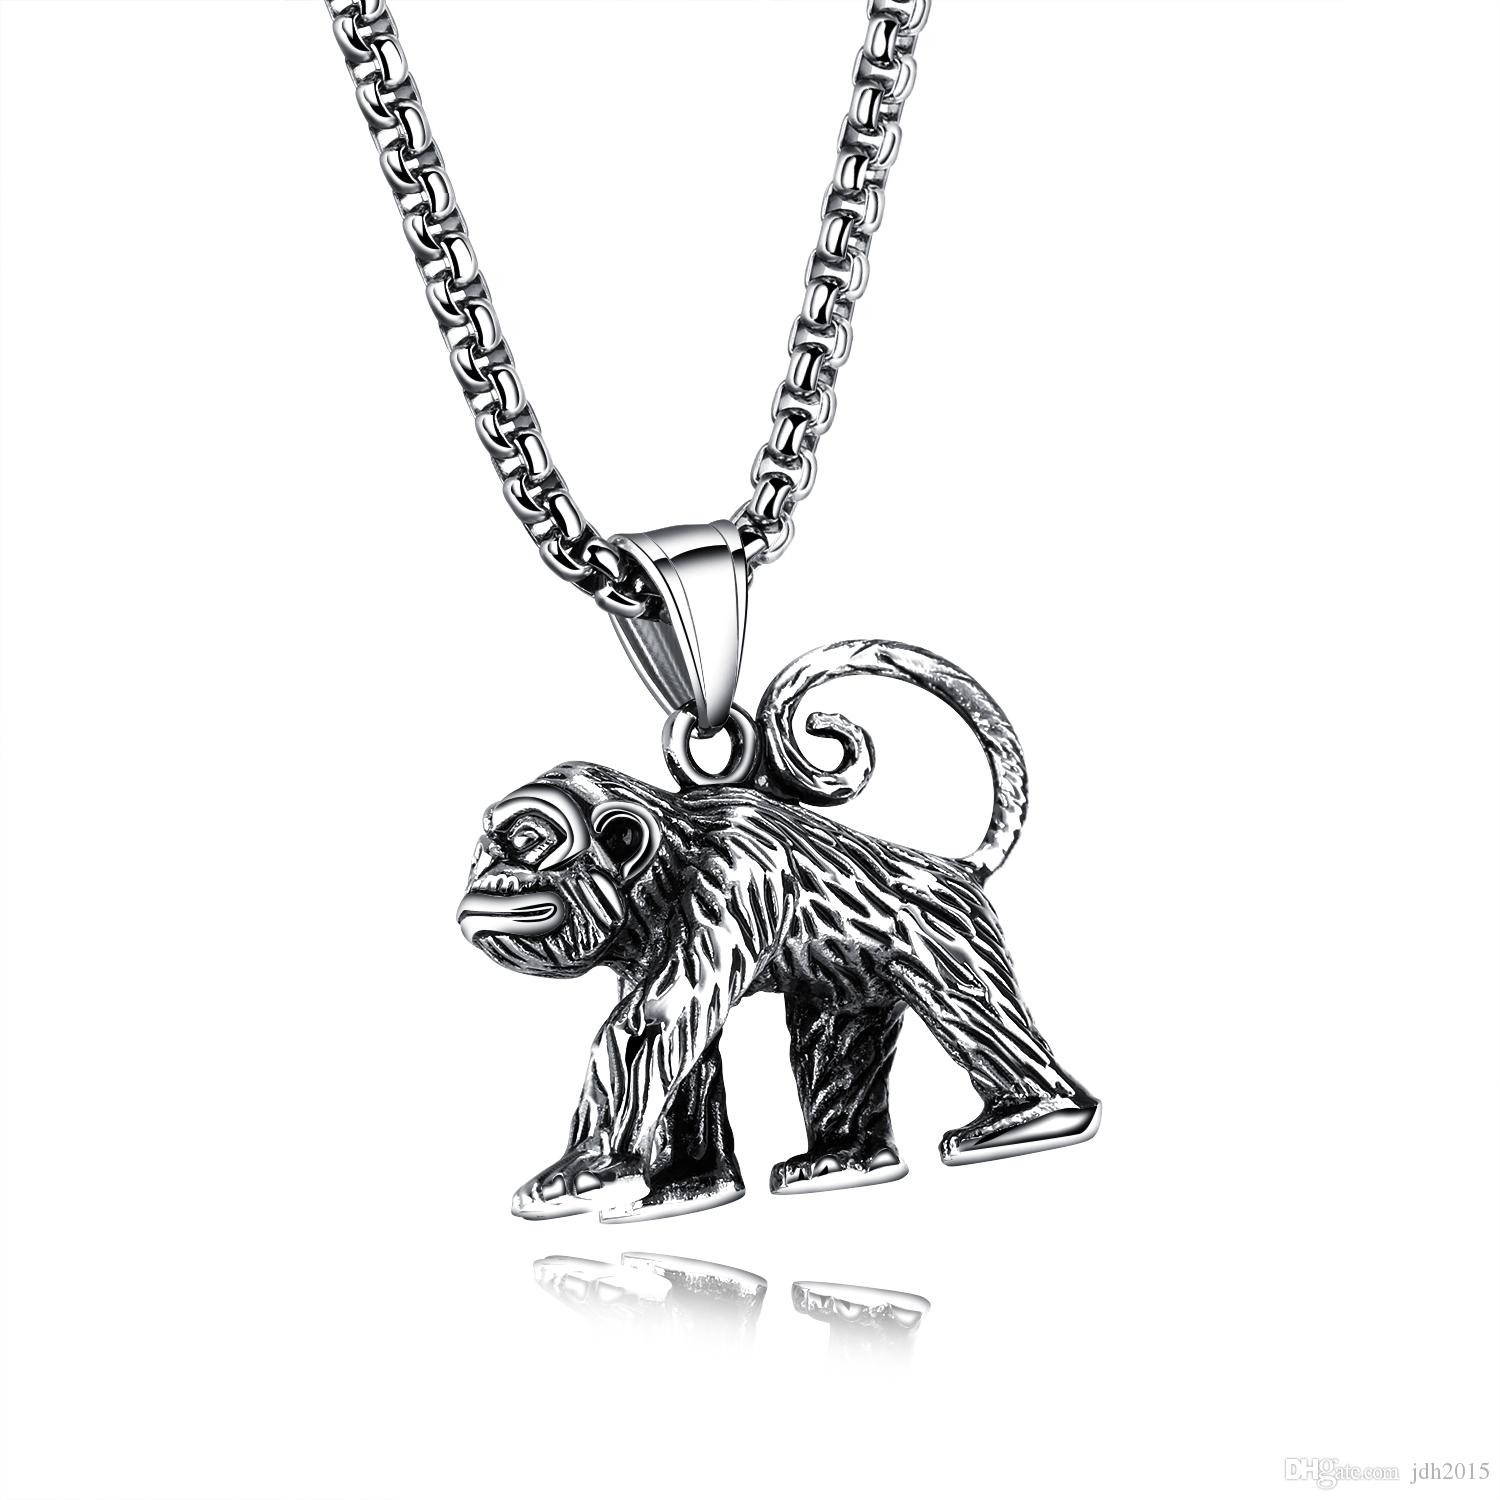 Tribal Men Stainless Steel Smart Orangutan Monkey Pendant Necklace